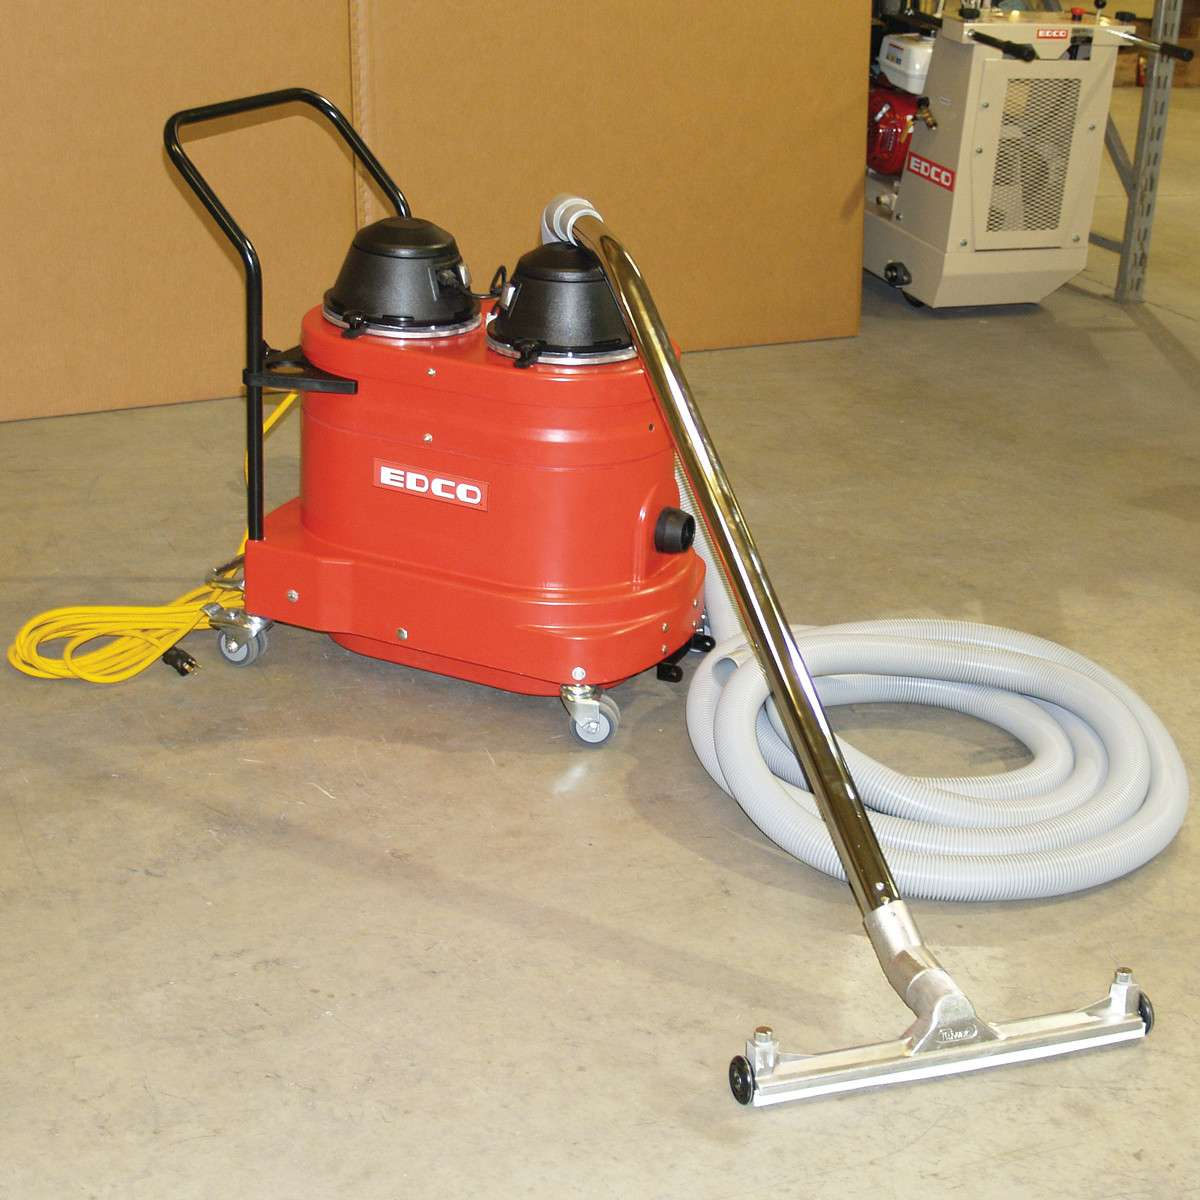 Edco magna trap 2ec ng concrete floor grinder wedgeless for Best vacuum for concrete floors